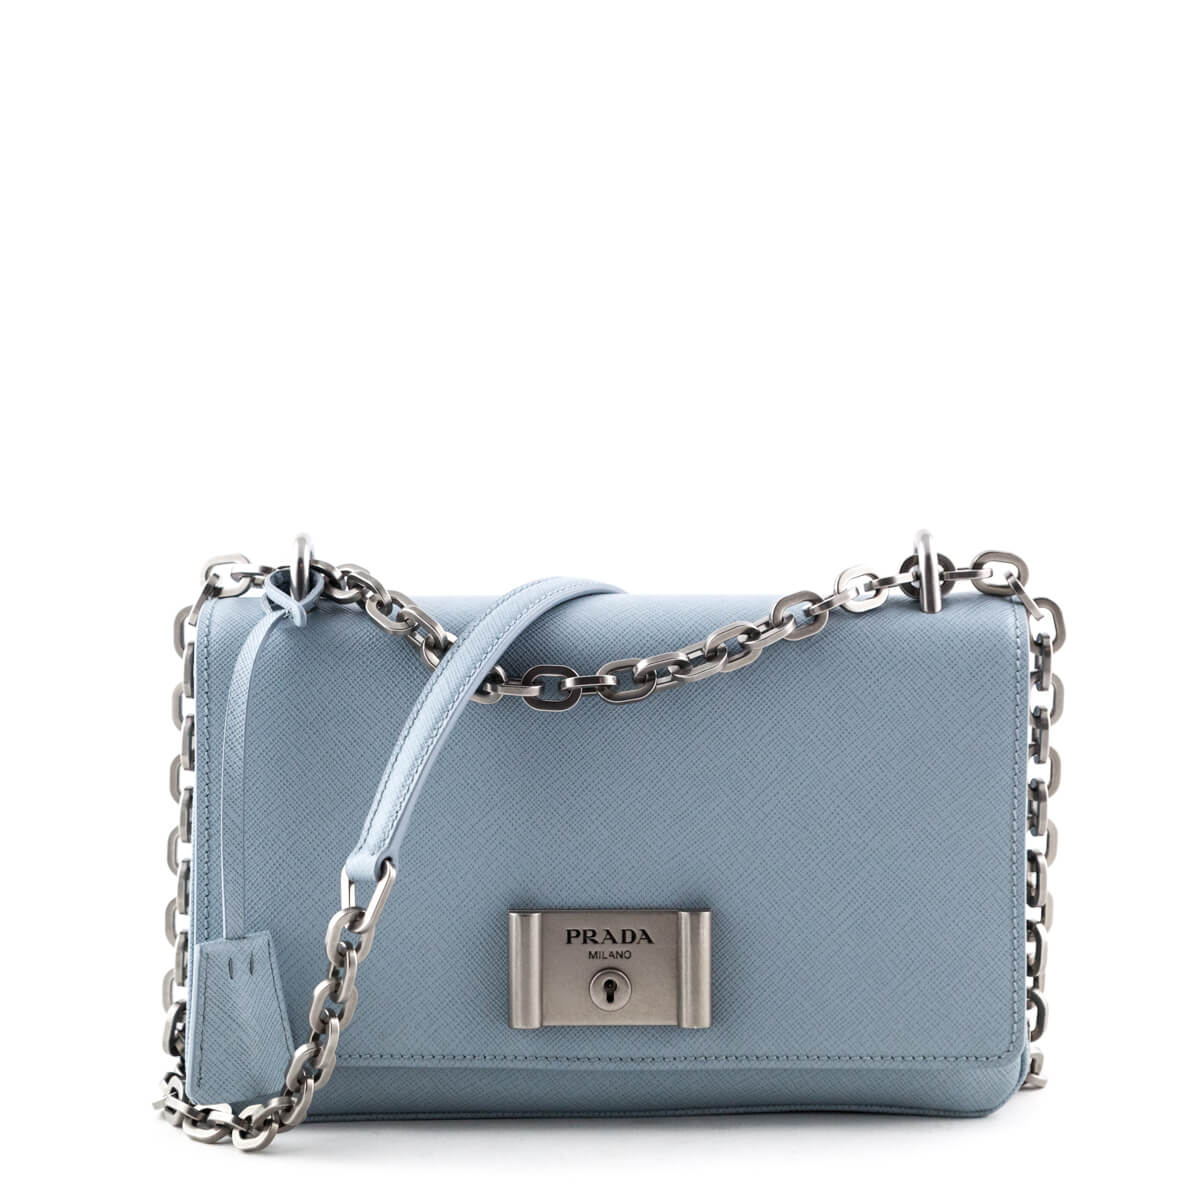 ac8a652c964f Prada Light Blue Saffiano Lux Chain Shoulder Bag - LOVE that BAG - Preowned  Authentic Designer ...